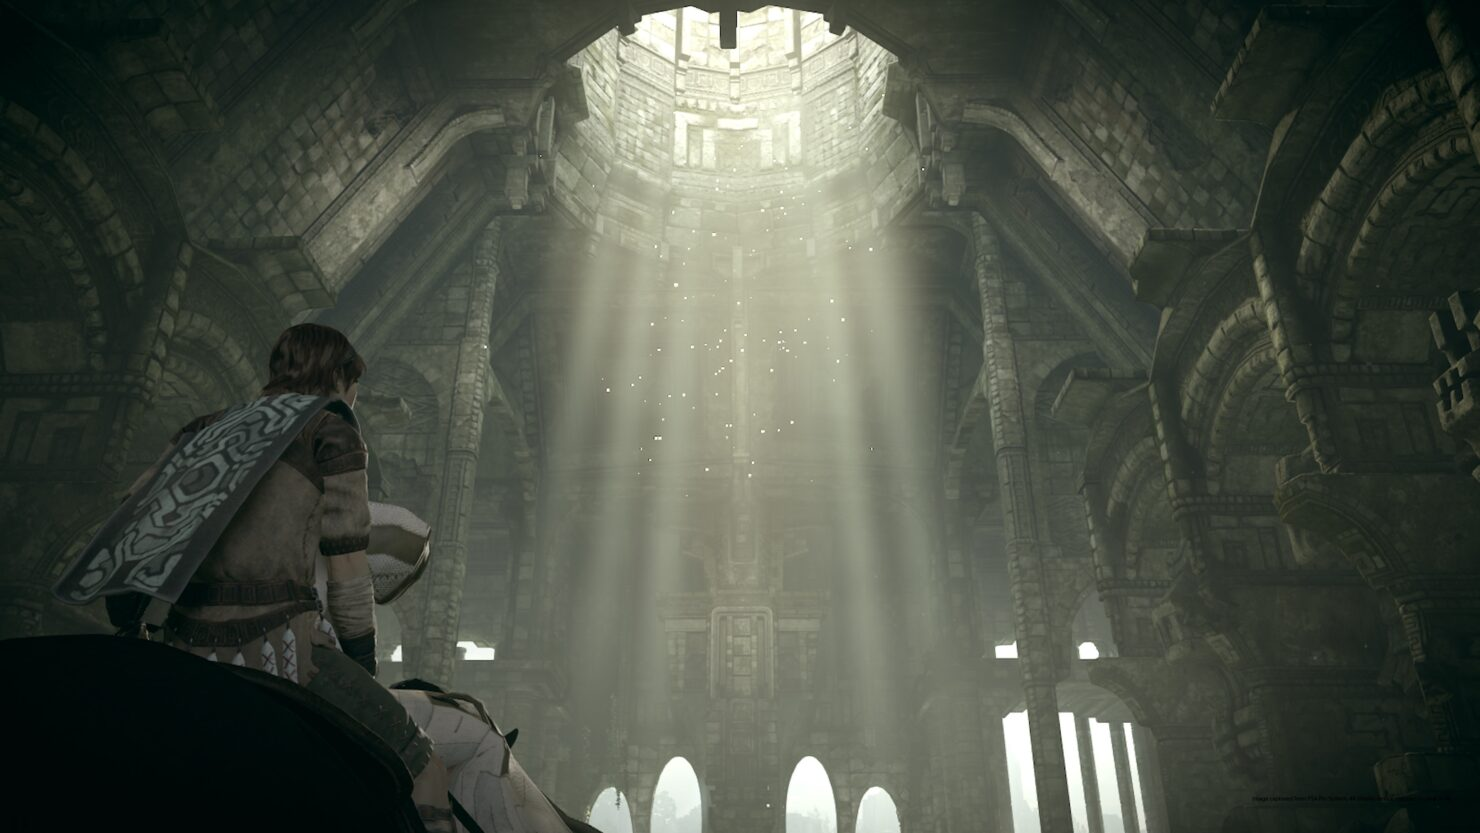 shadow-of-the-colossus-on-ps4_27152686919_o